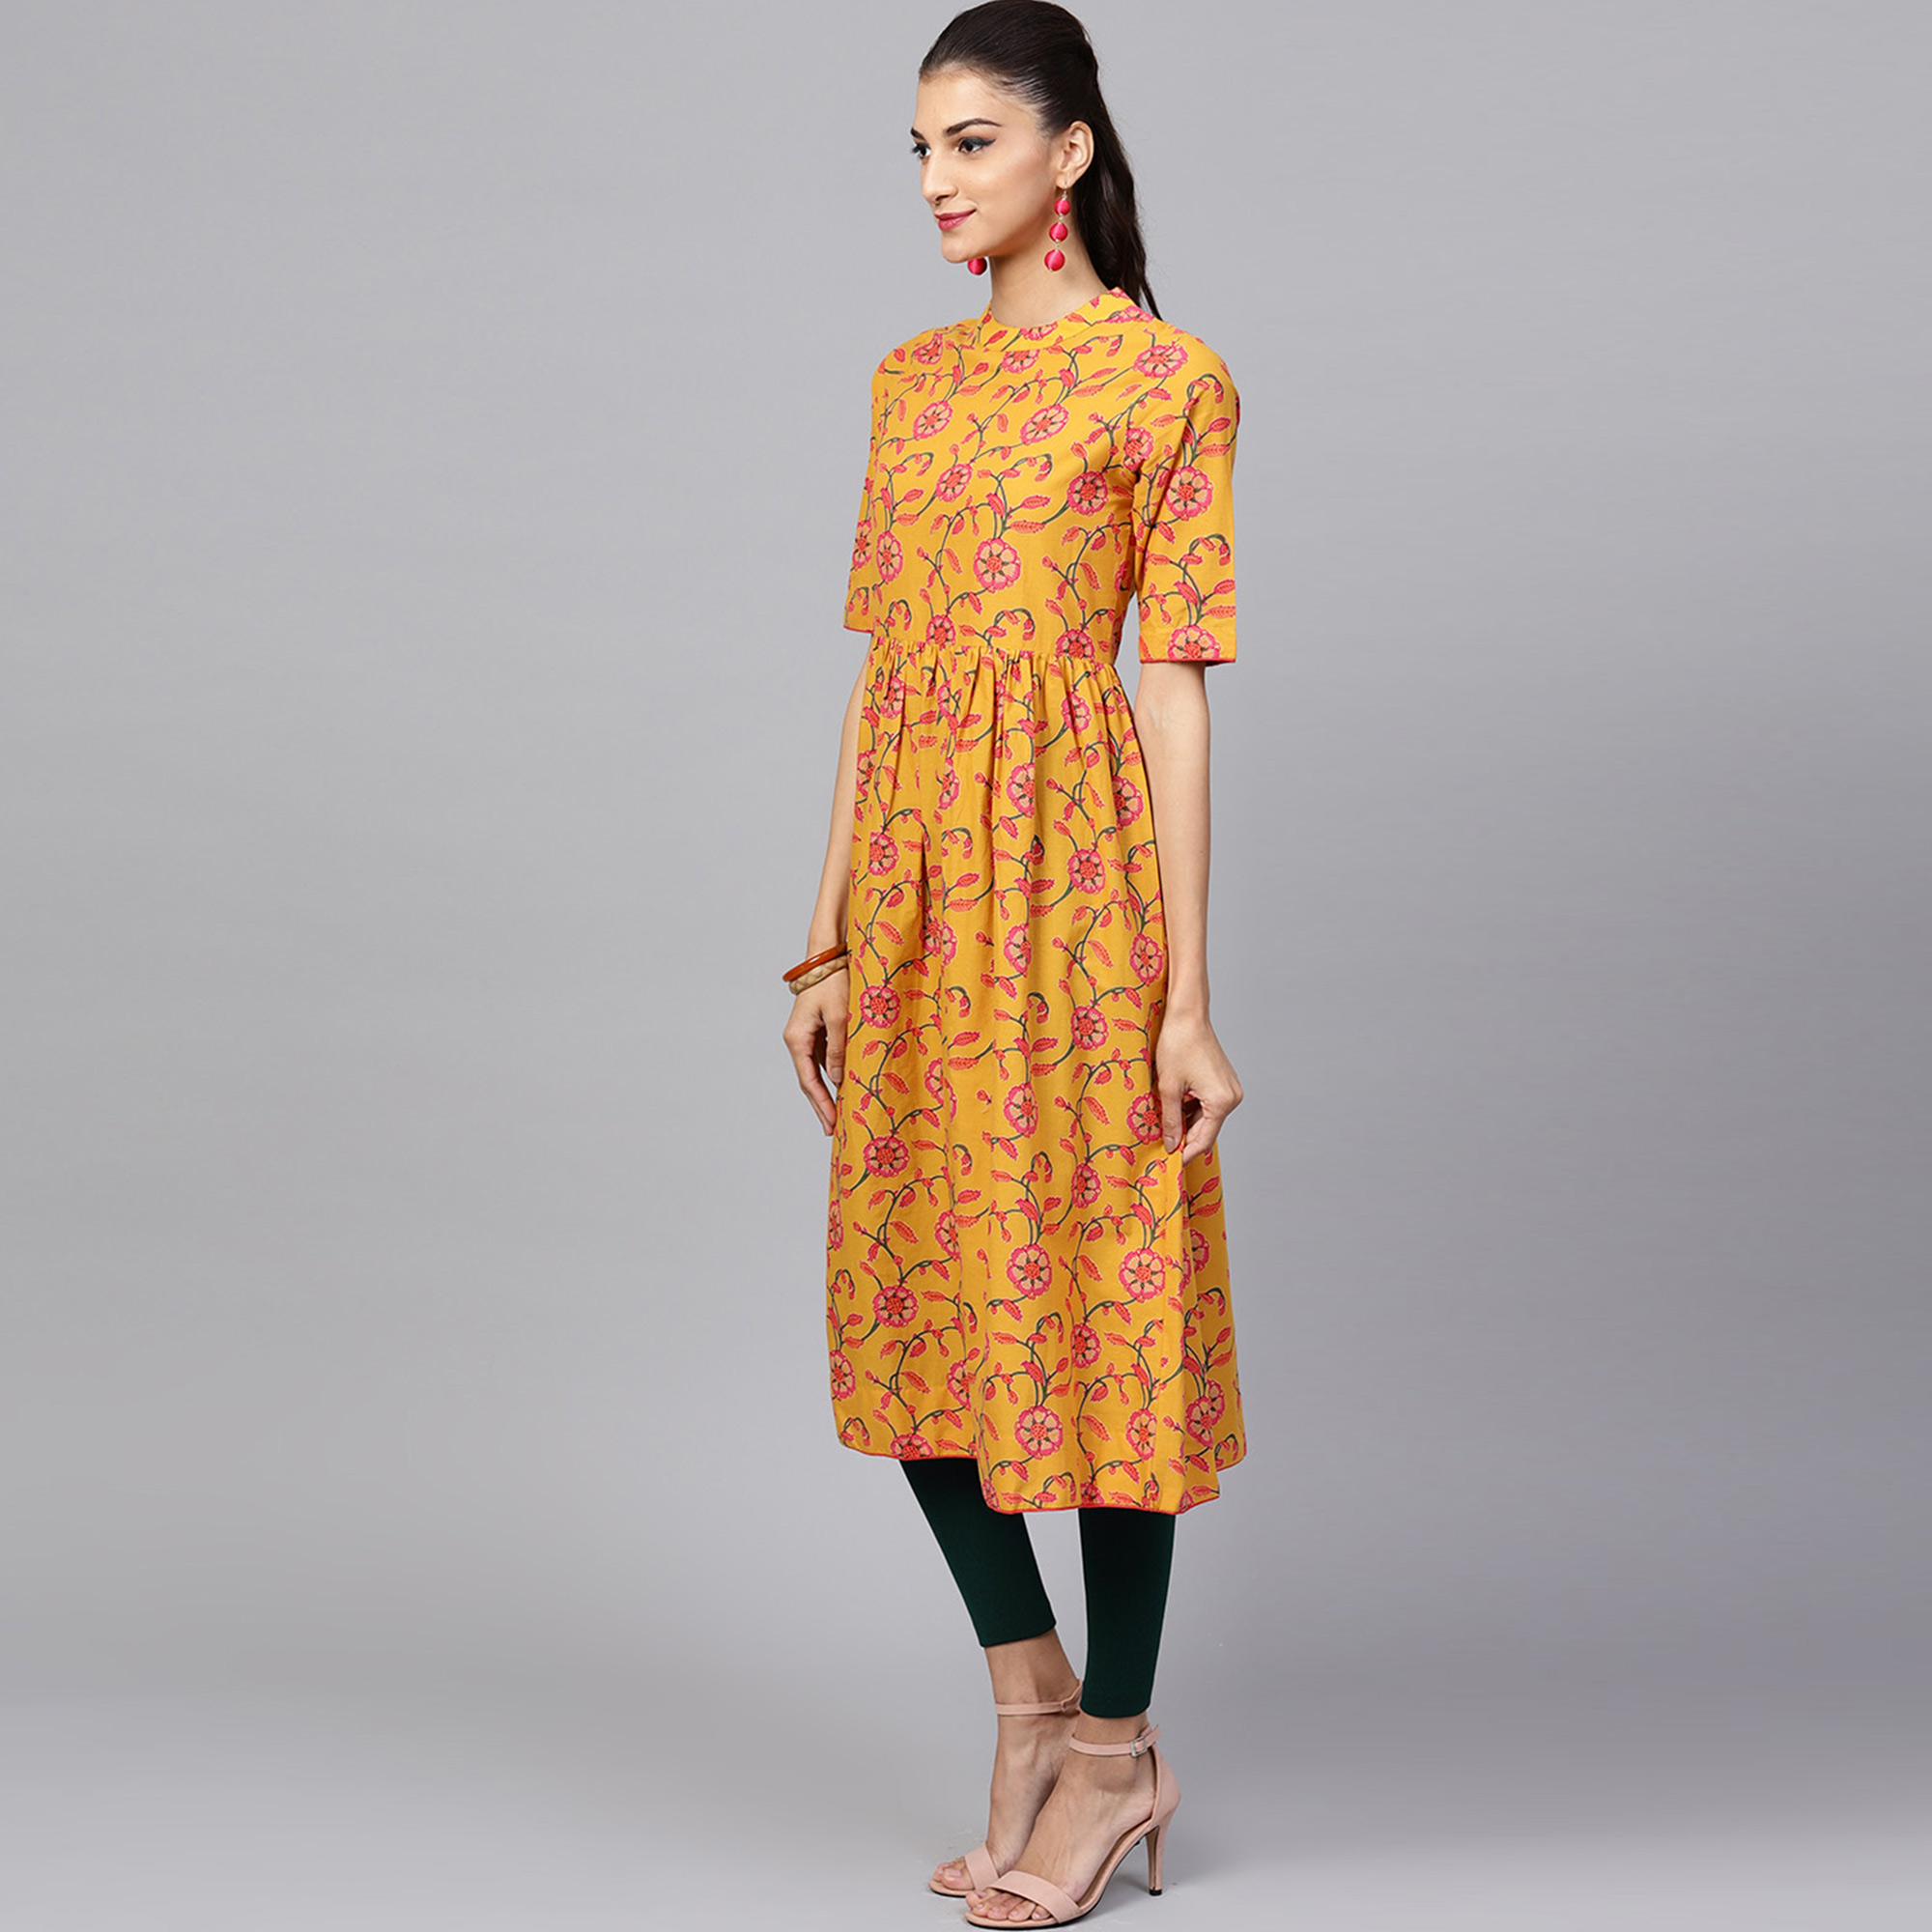 Fantastic Mustard Yellow Colored Casual Printed Cotton Kurti